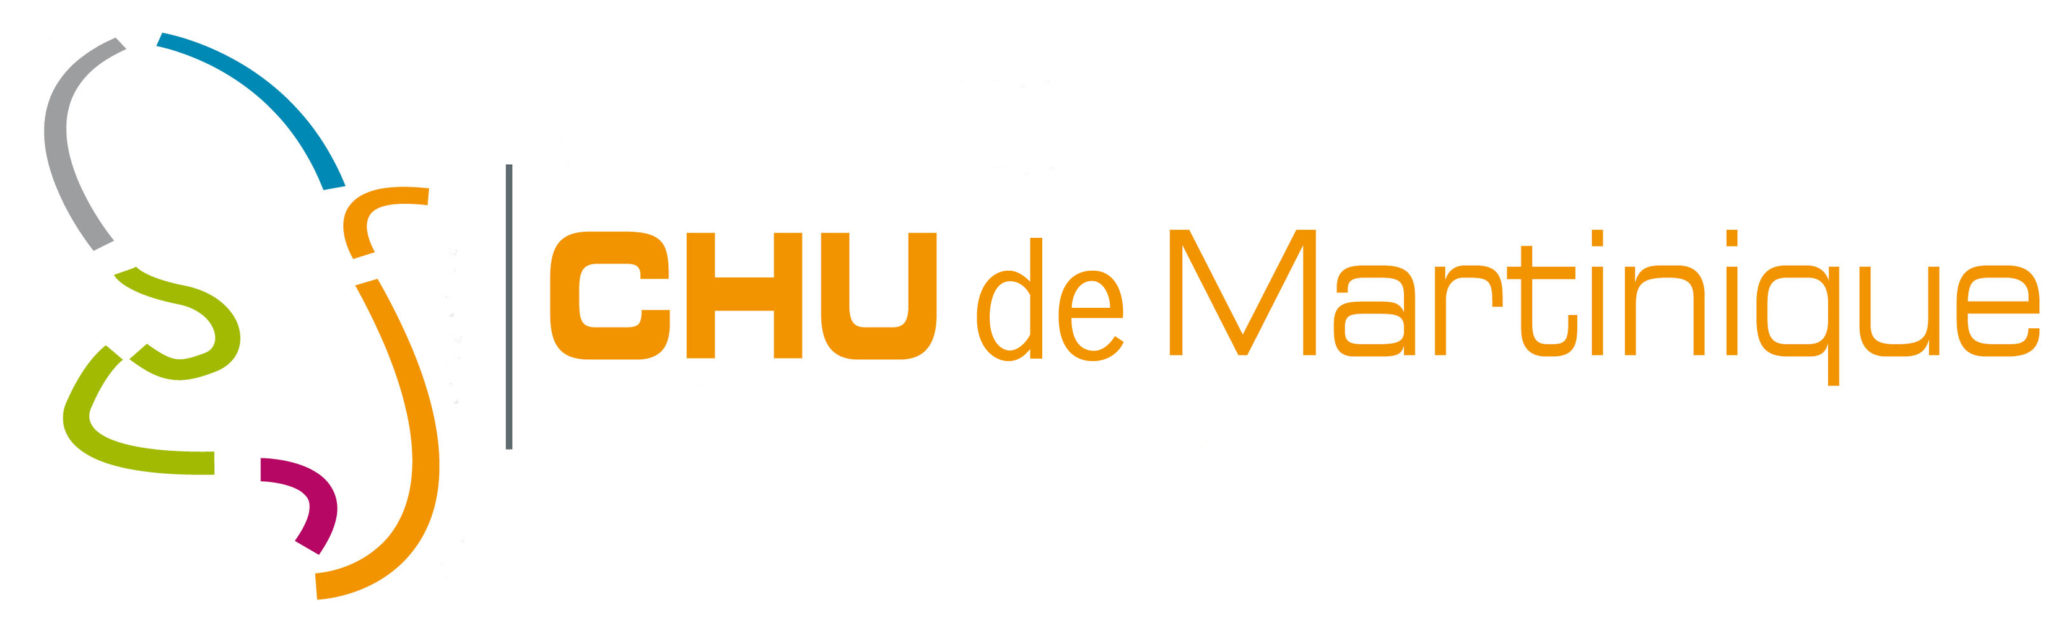 Logo du CHU de Martinique